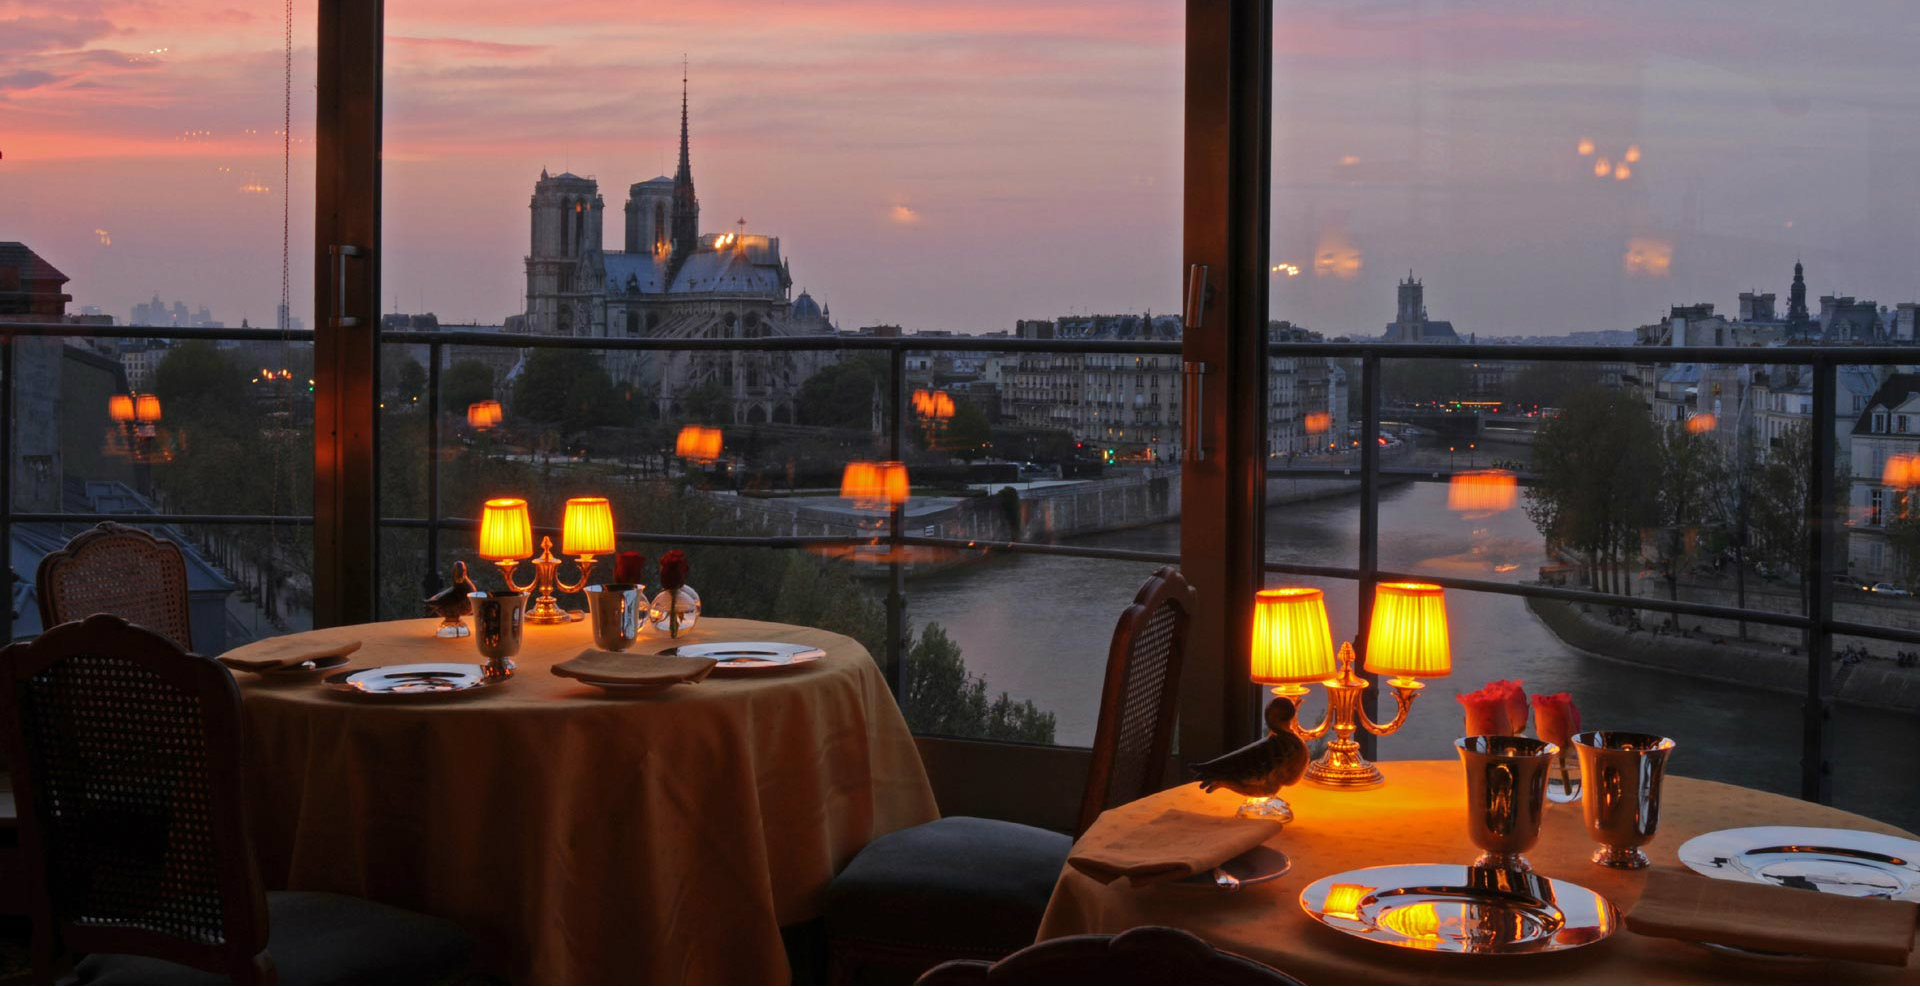 Find the best restaurants in Paris Luxury Center Tables Luxury Center Tables You Need To Add To Your Home Décor Find the best restaurants in Paris cover Luxury Center Tables Luxury Center Tables You Need To Add To Your Home Décor Find the best restaurants in Paris cover